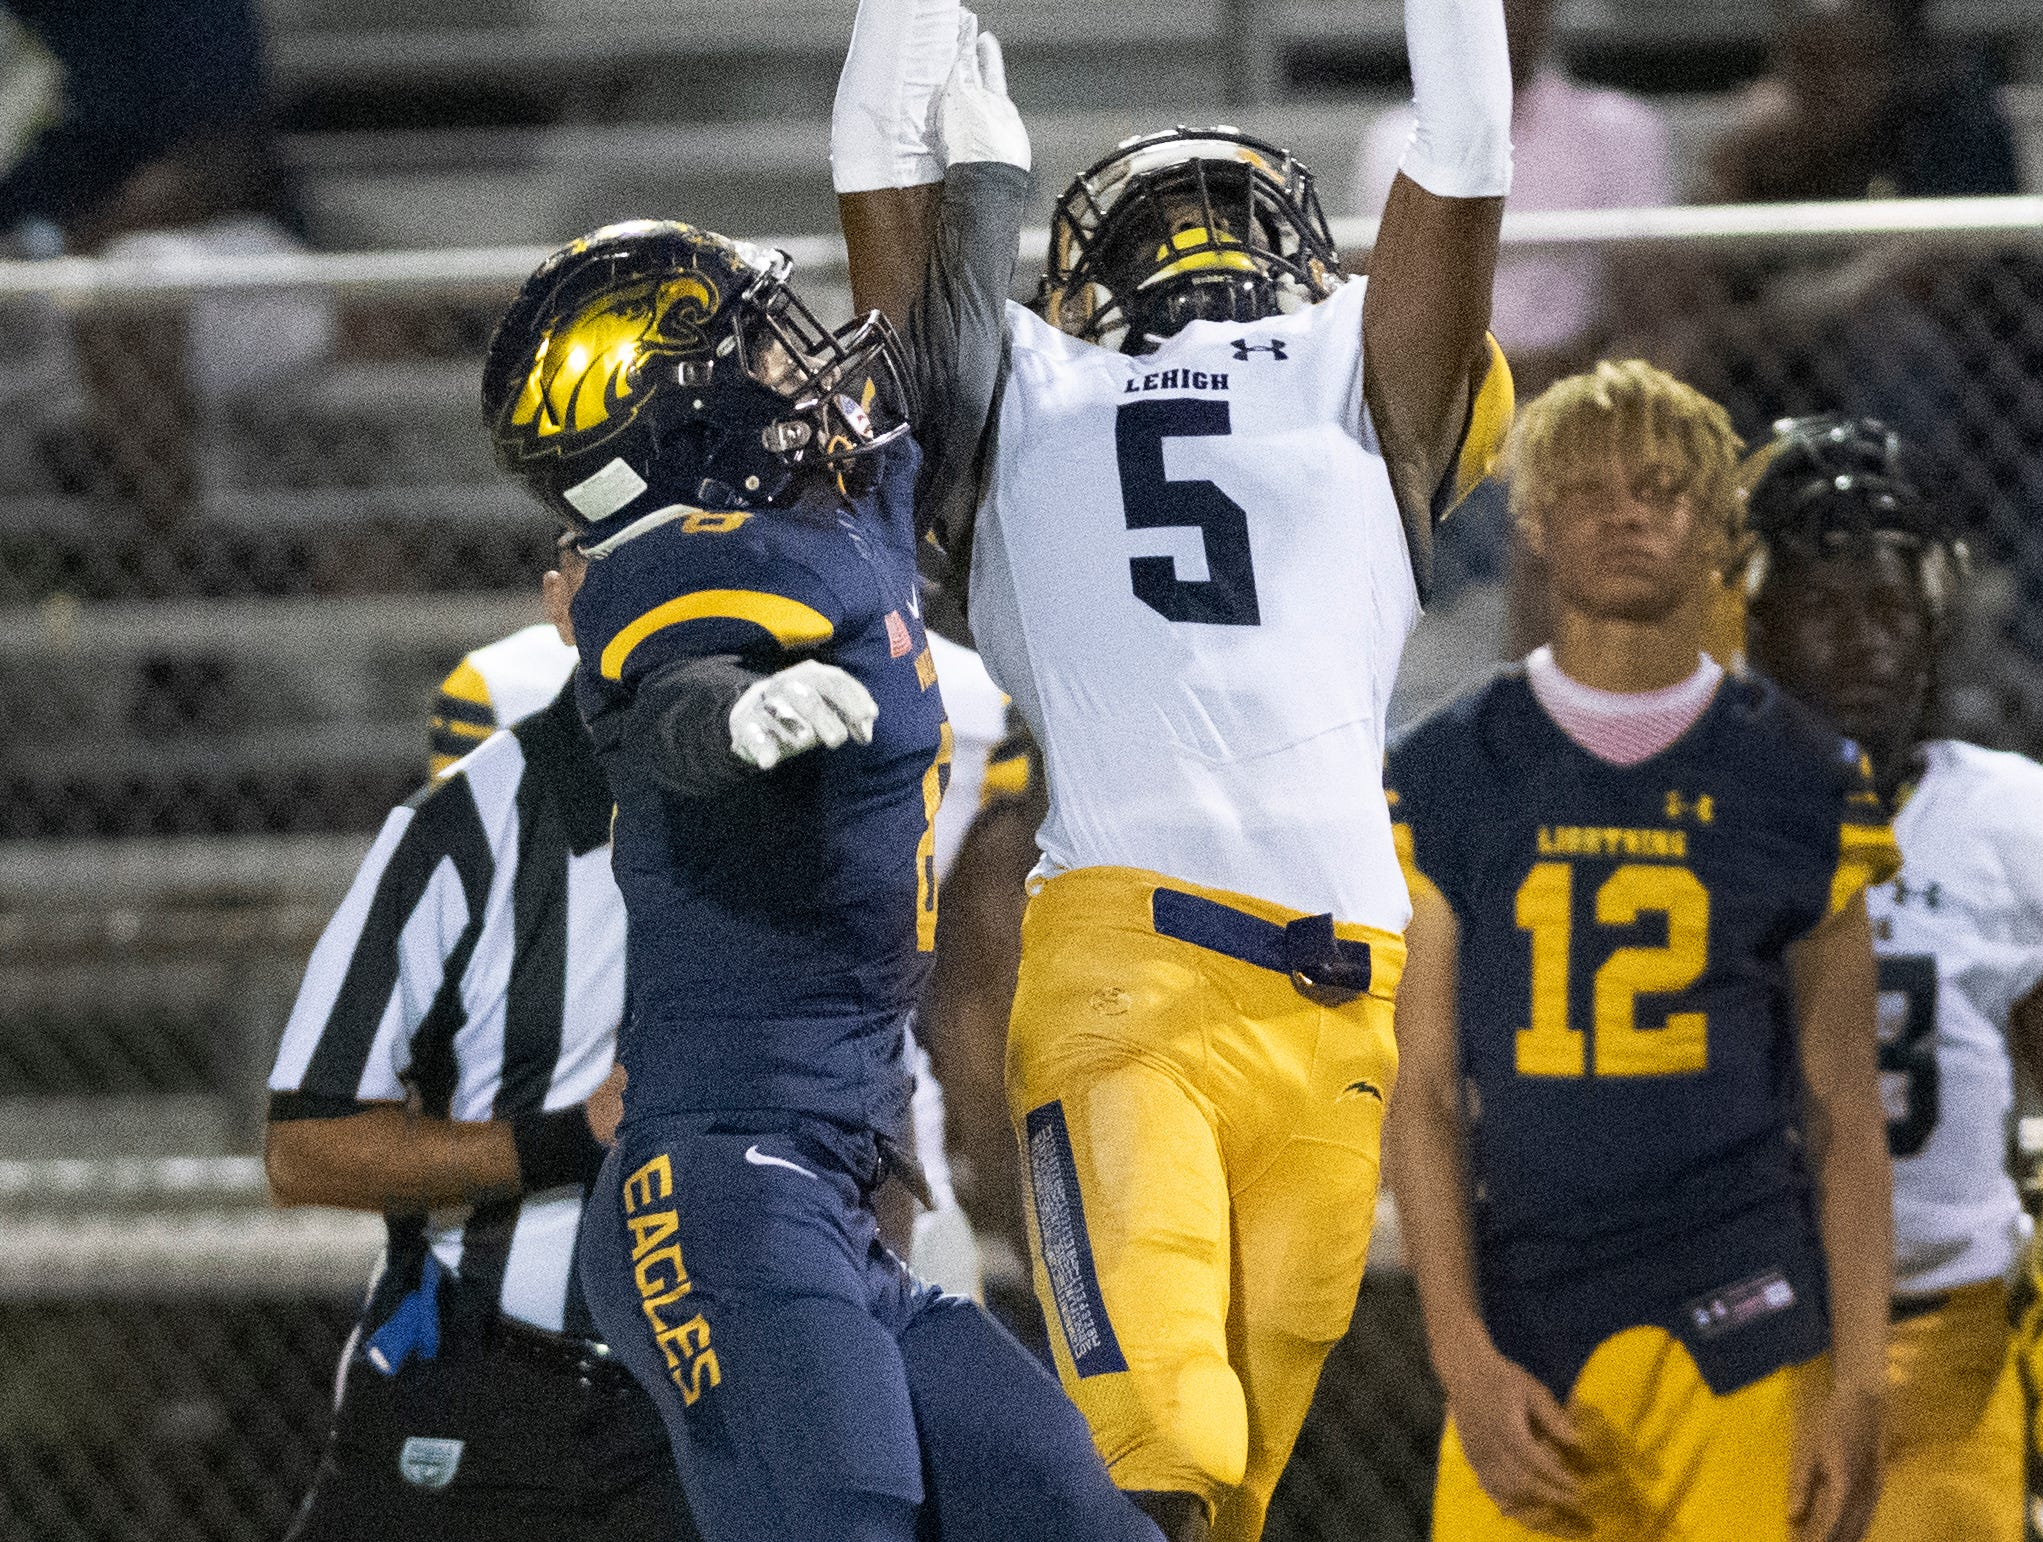 TarVarish Dawson of Lehigh makes a catch over Tre Smith of Naples during the Class 6A regional quarterfinal playoff game at Naples High on Friday night, November 9, 2018.